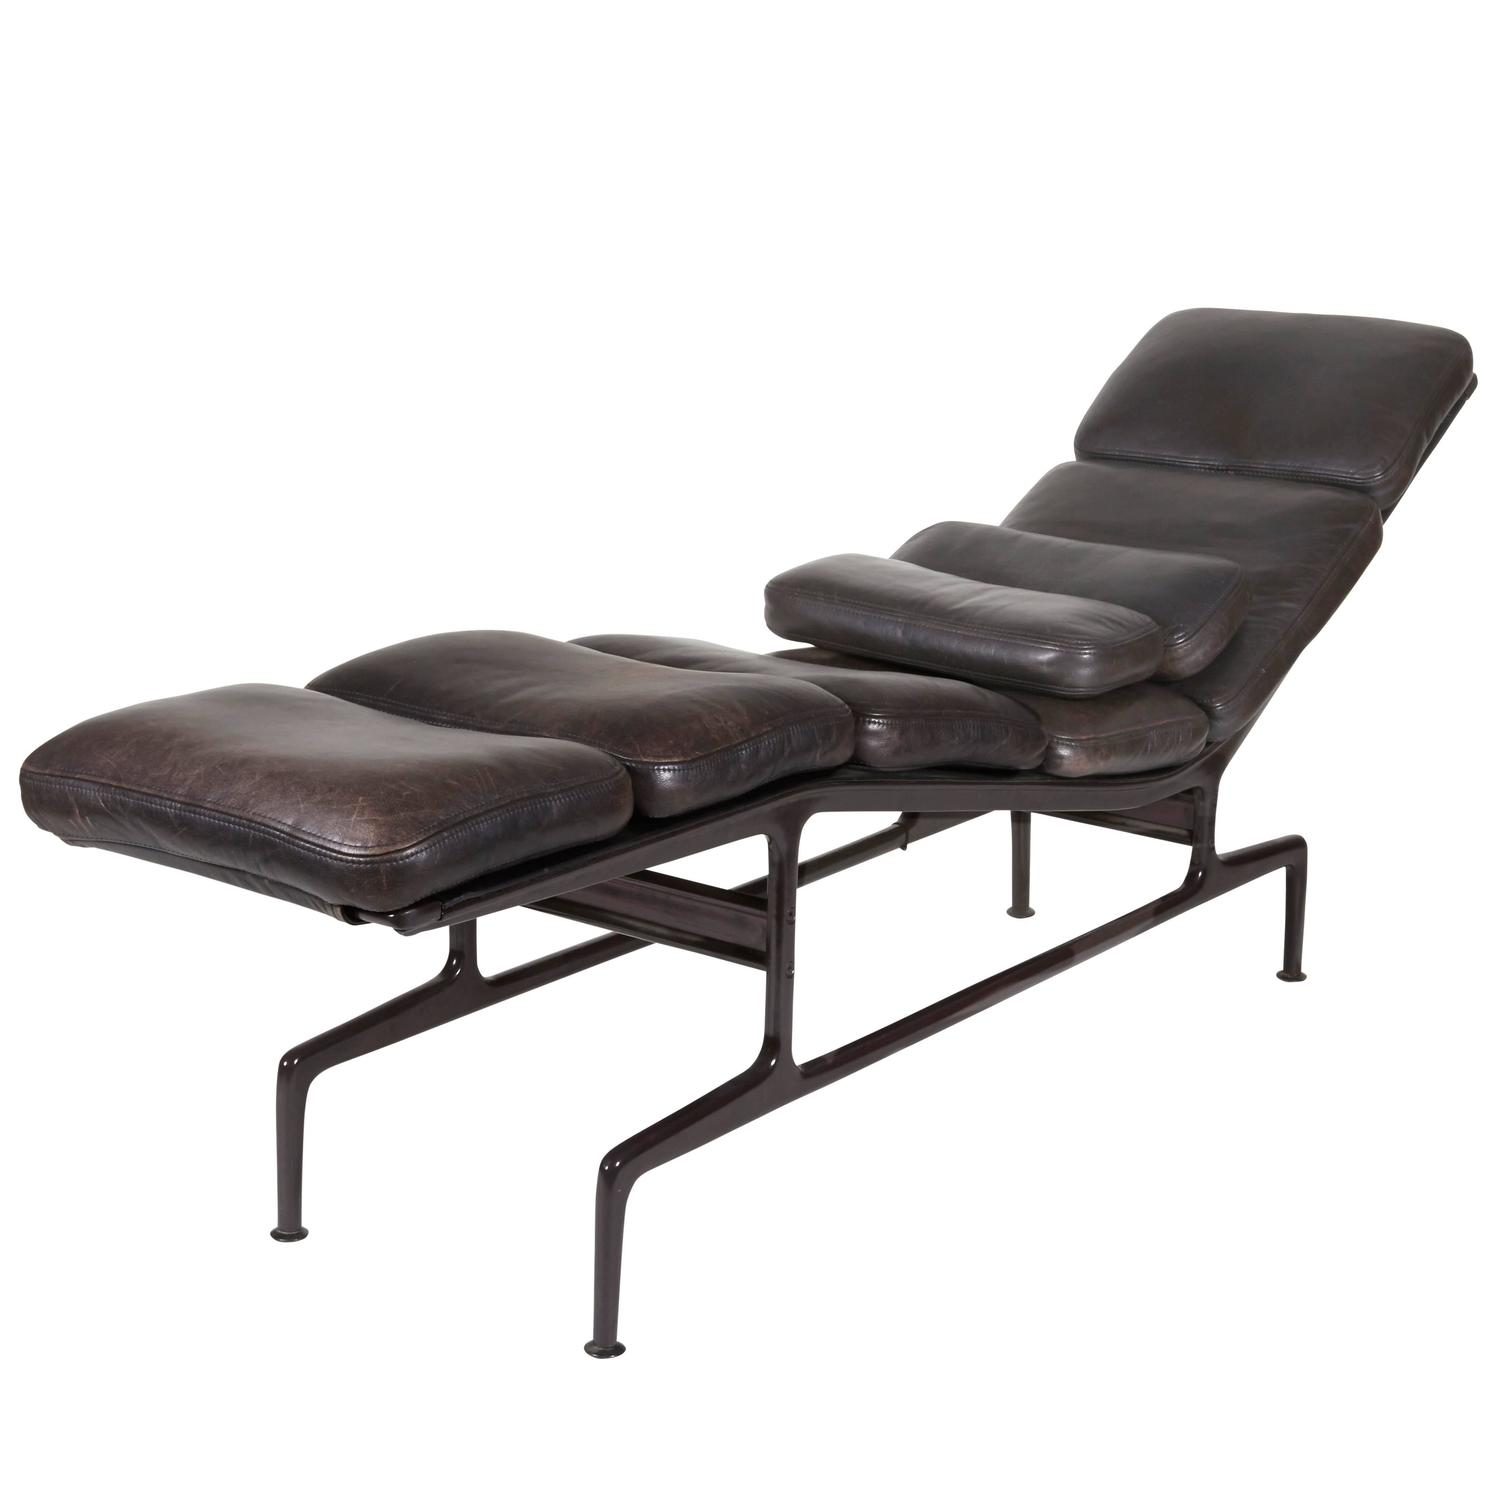 Billy wilder chaise by charles and ray eames for sale at for Chaise charles eames tissu